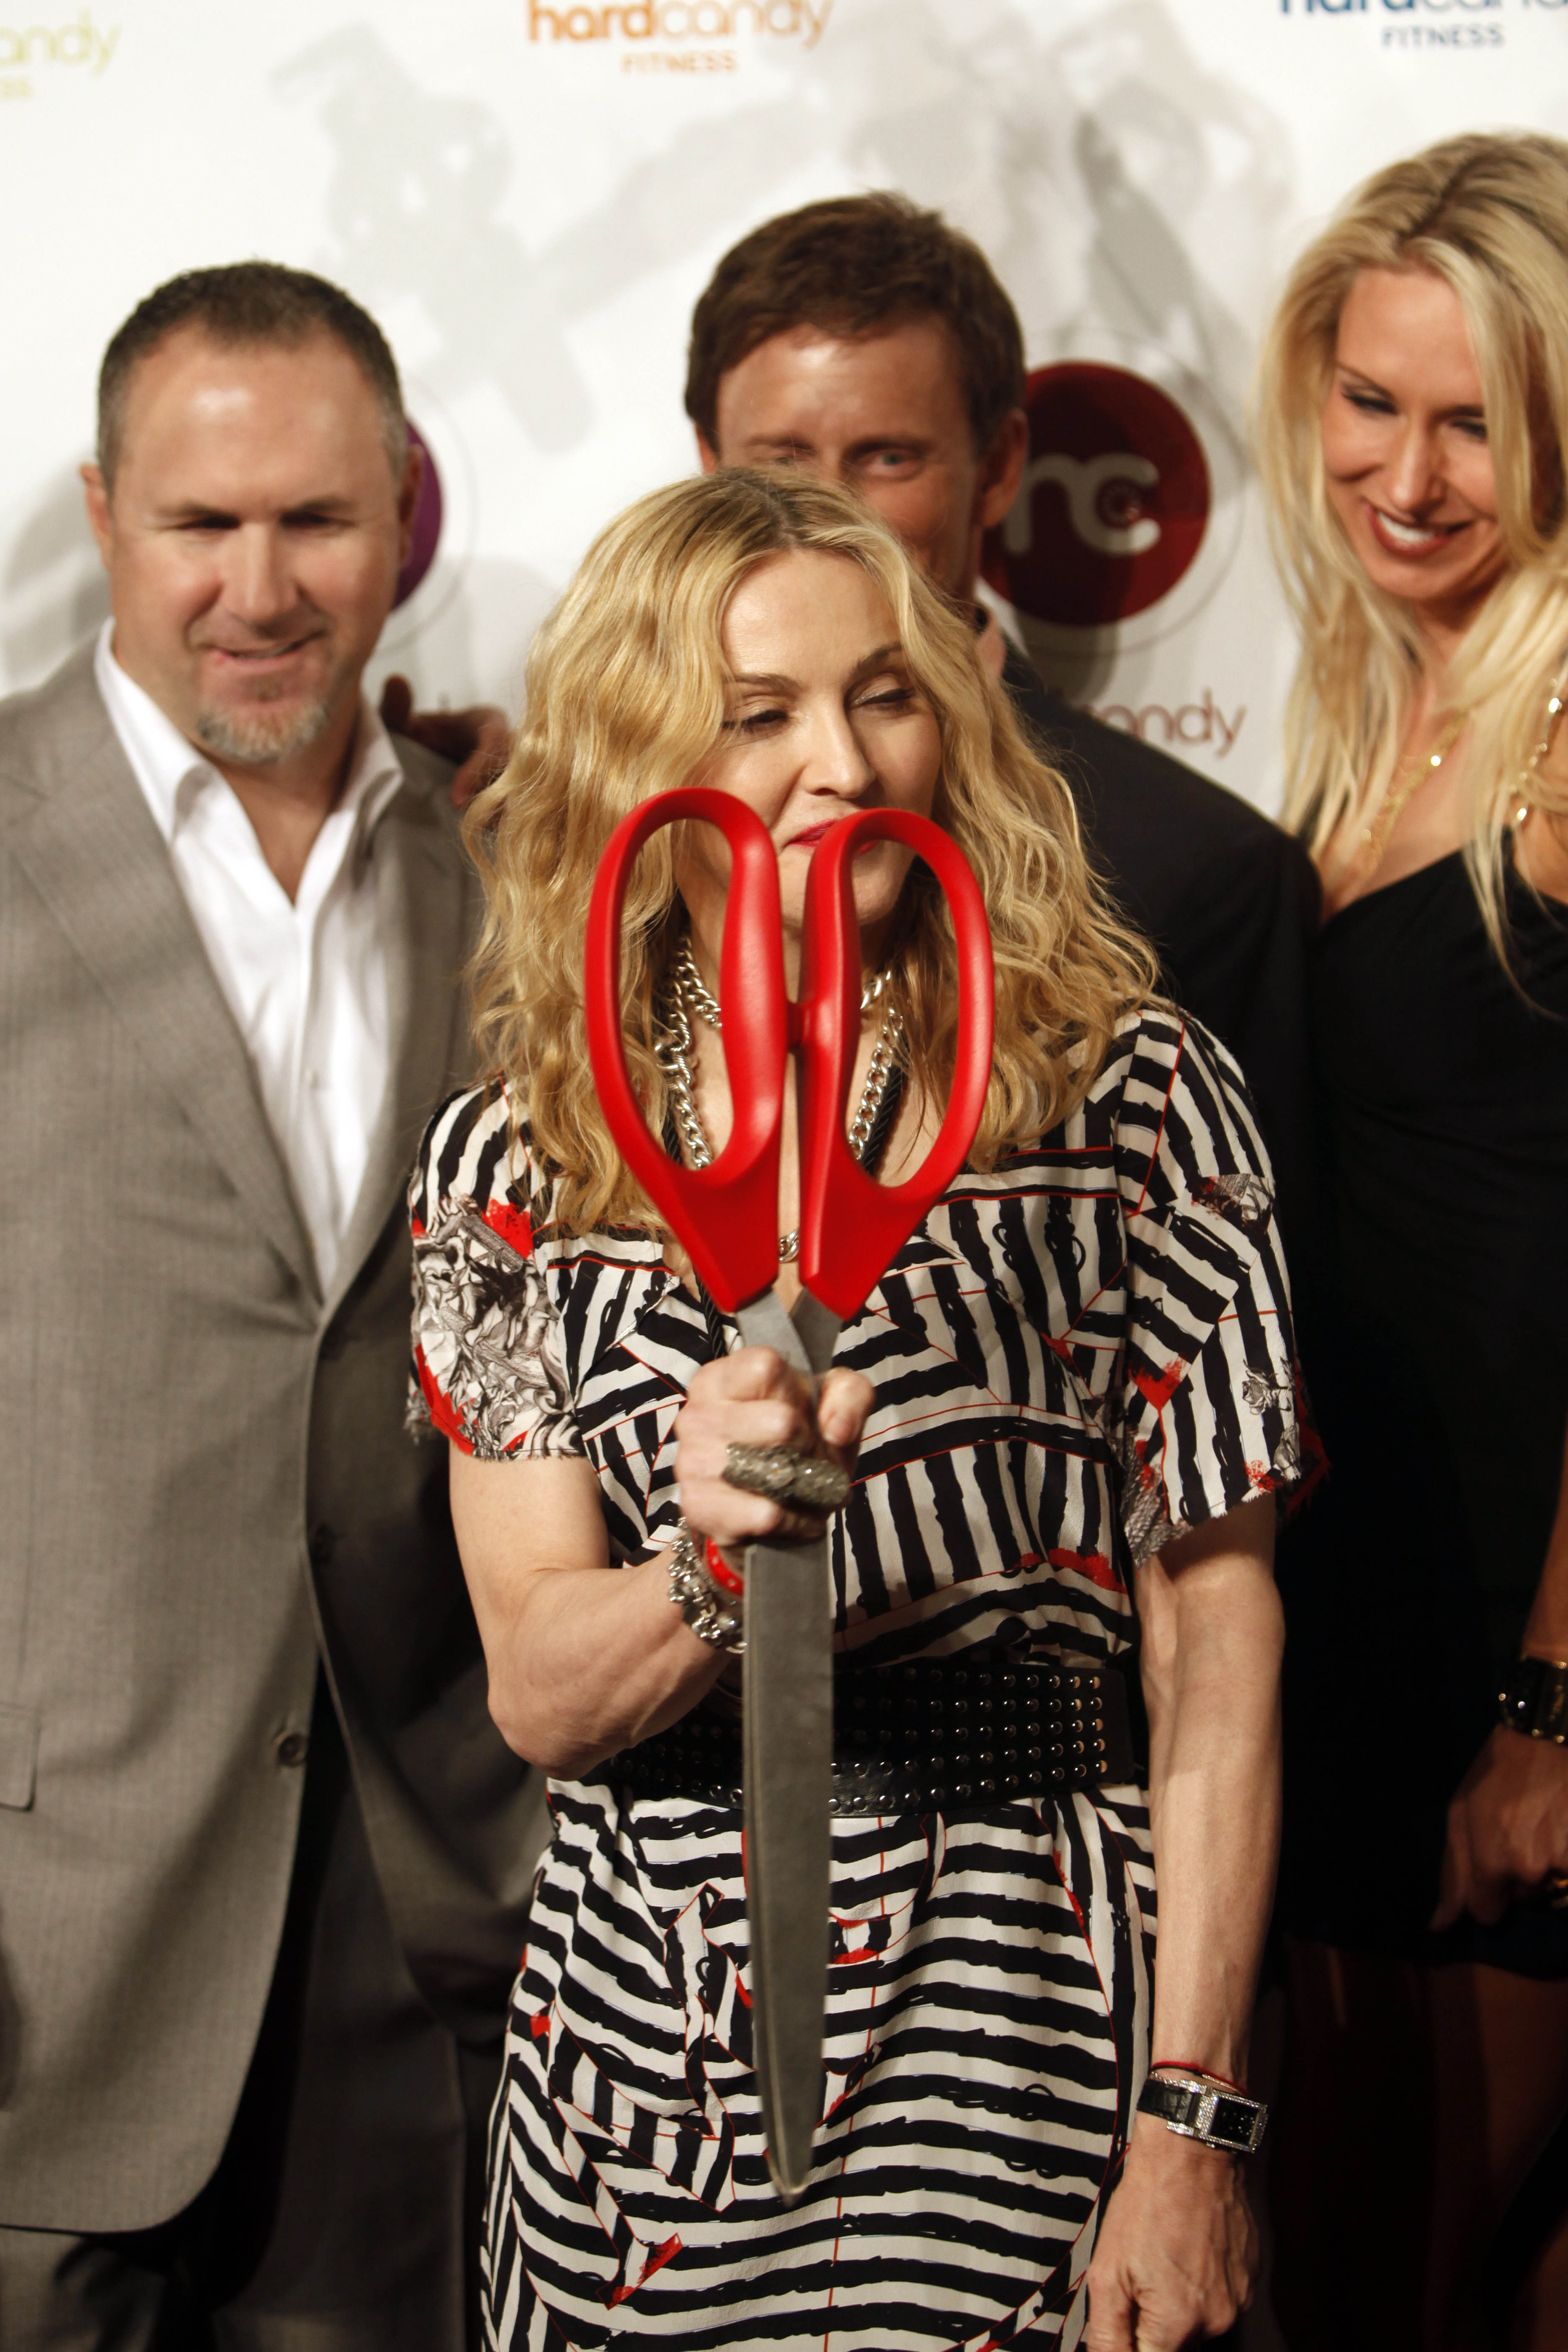 """It's a sexy name that gives you the opportunity to have fun and to build strength as far as the imagination will allow,"" —Madonna on her new gym Hard Candy Fitness, which opened Nov. 29 in Mexico City. The singer plans on expanding the brand into the United States and globally once it is fine-tuned. (AP PHOTO/MIGUEL TOVAR)"